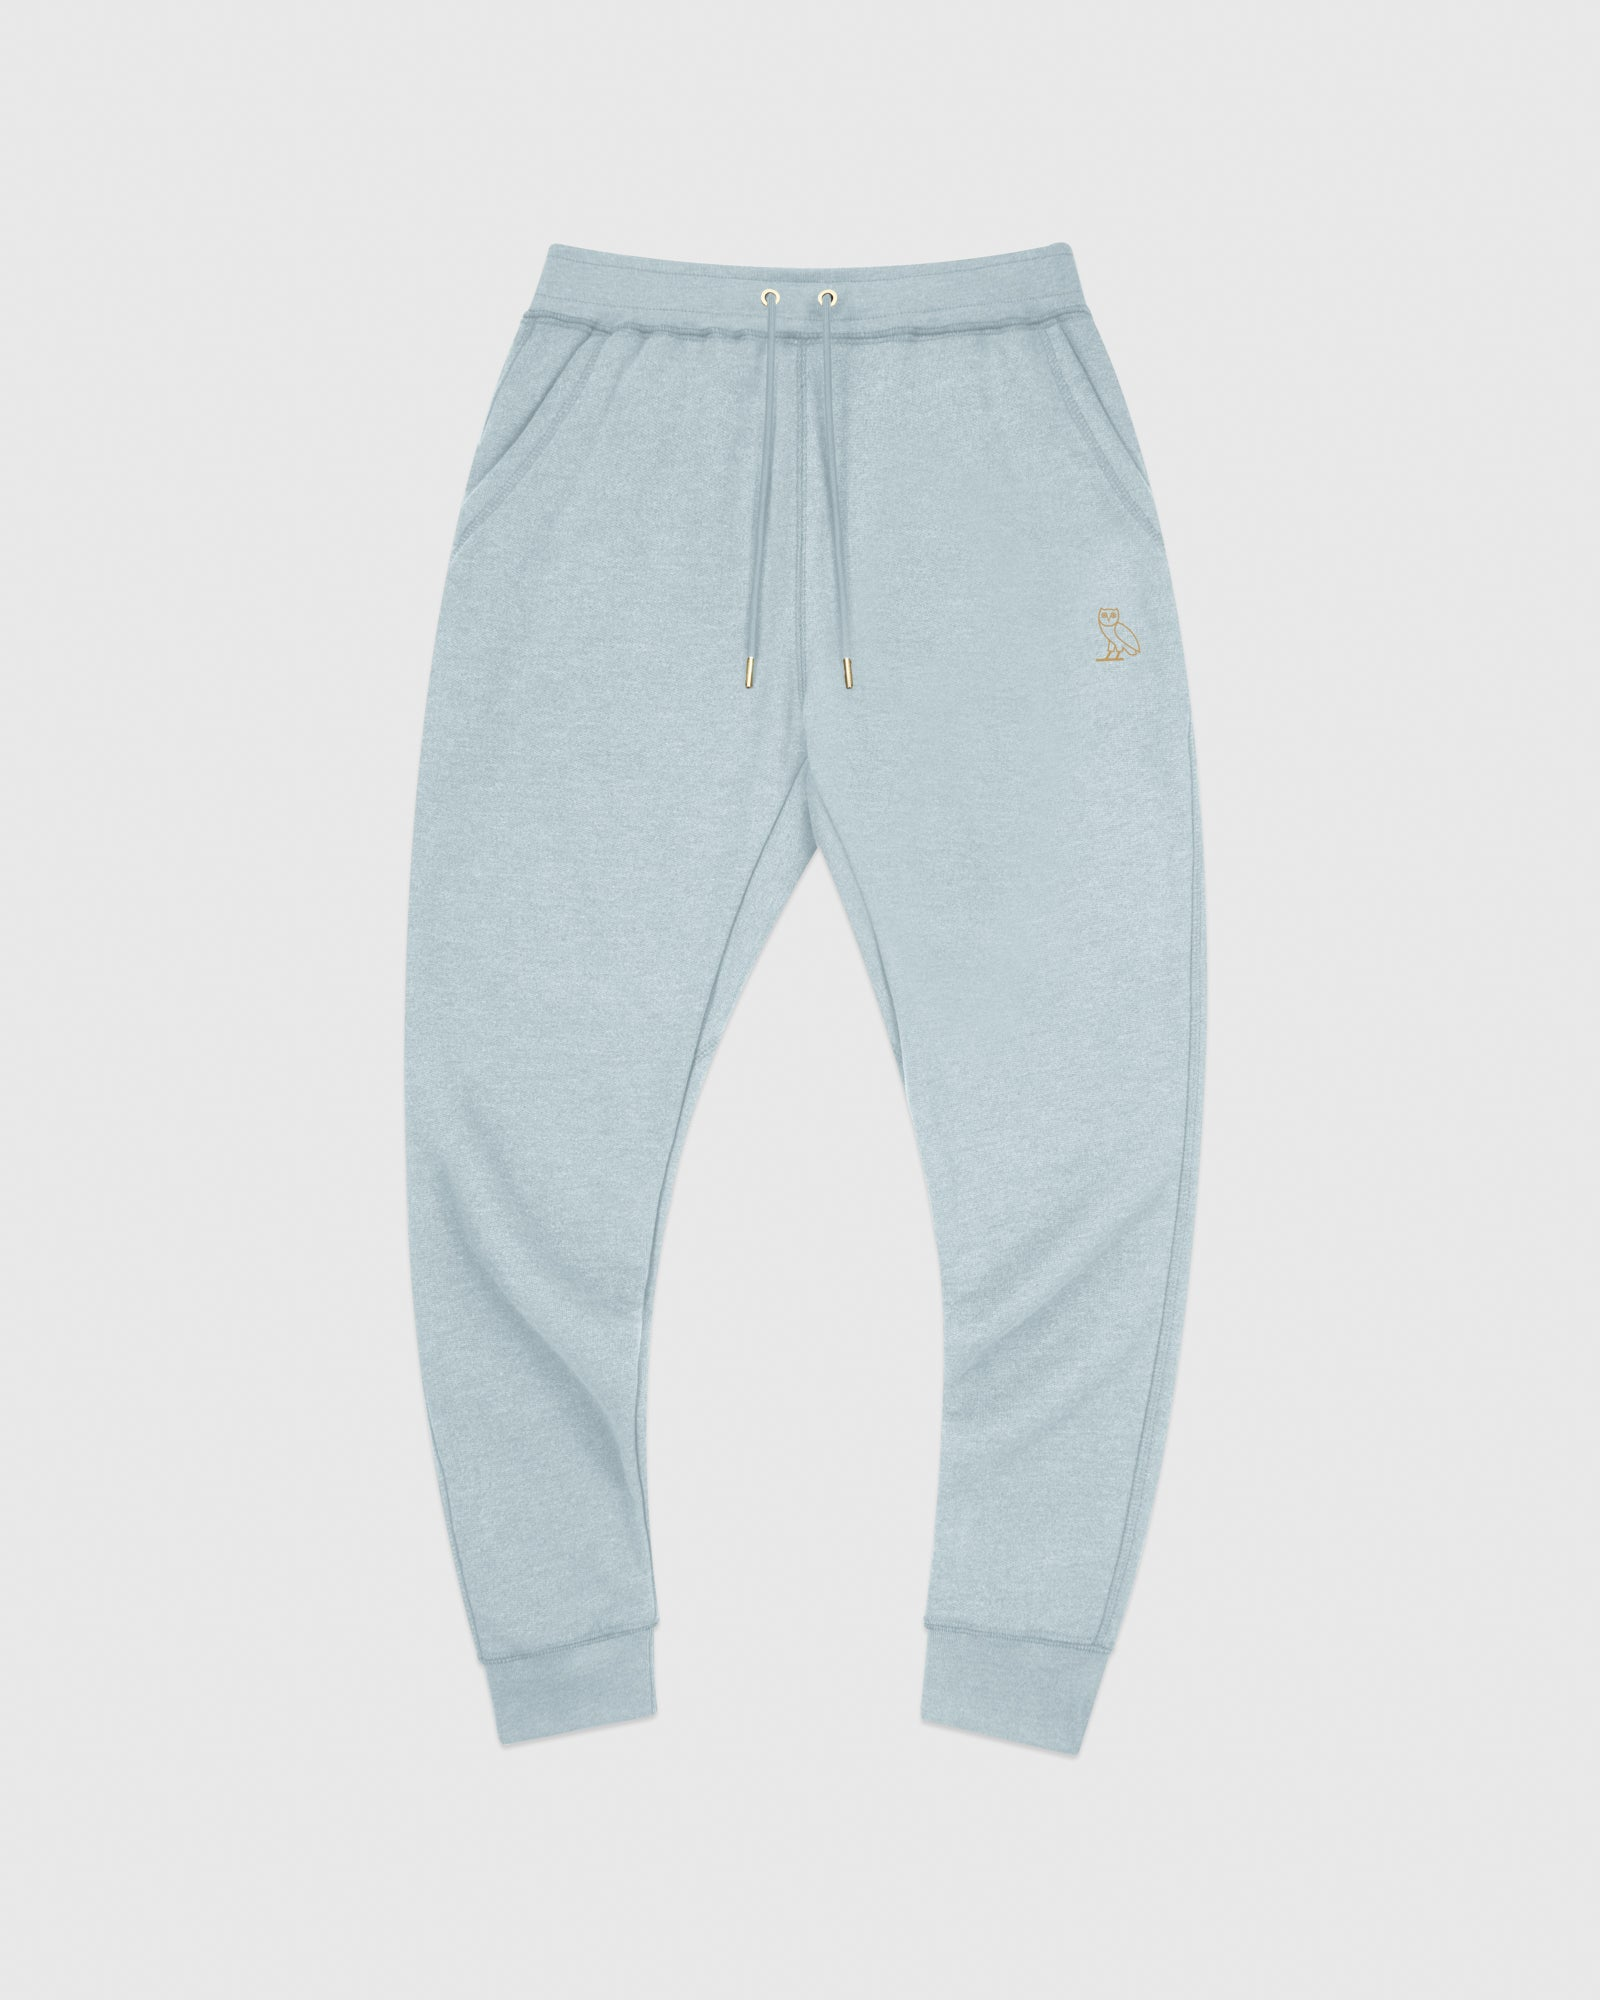 OVO FRENCH TERRY SWEATPANT - HEATHER LIGHT BLUE IMAGE #1